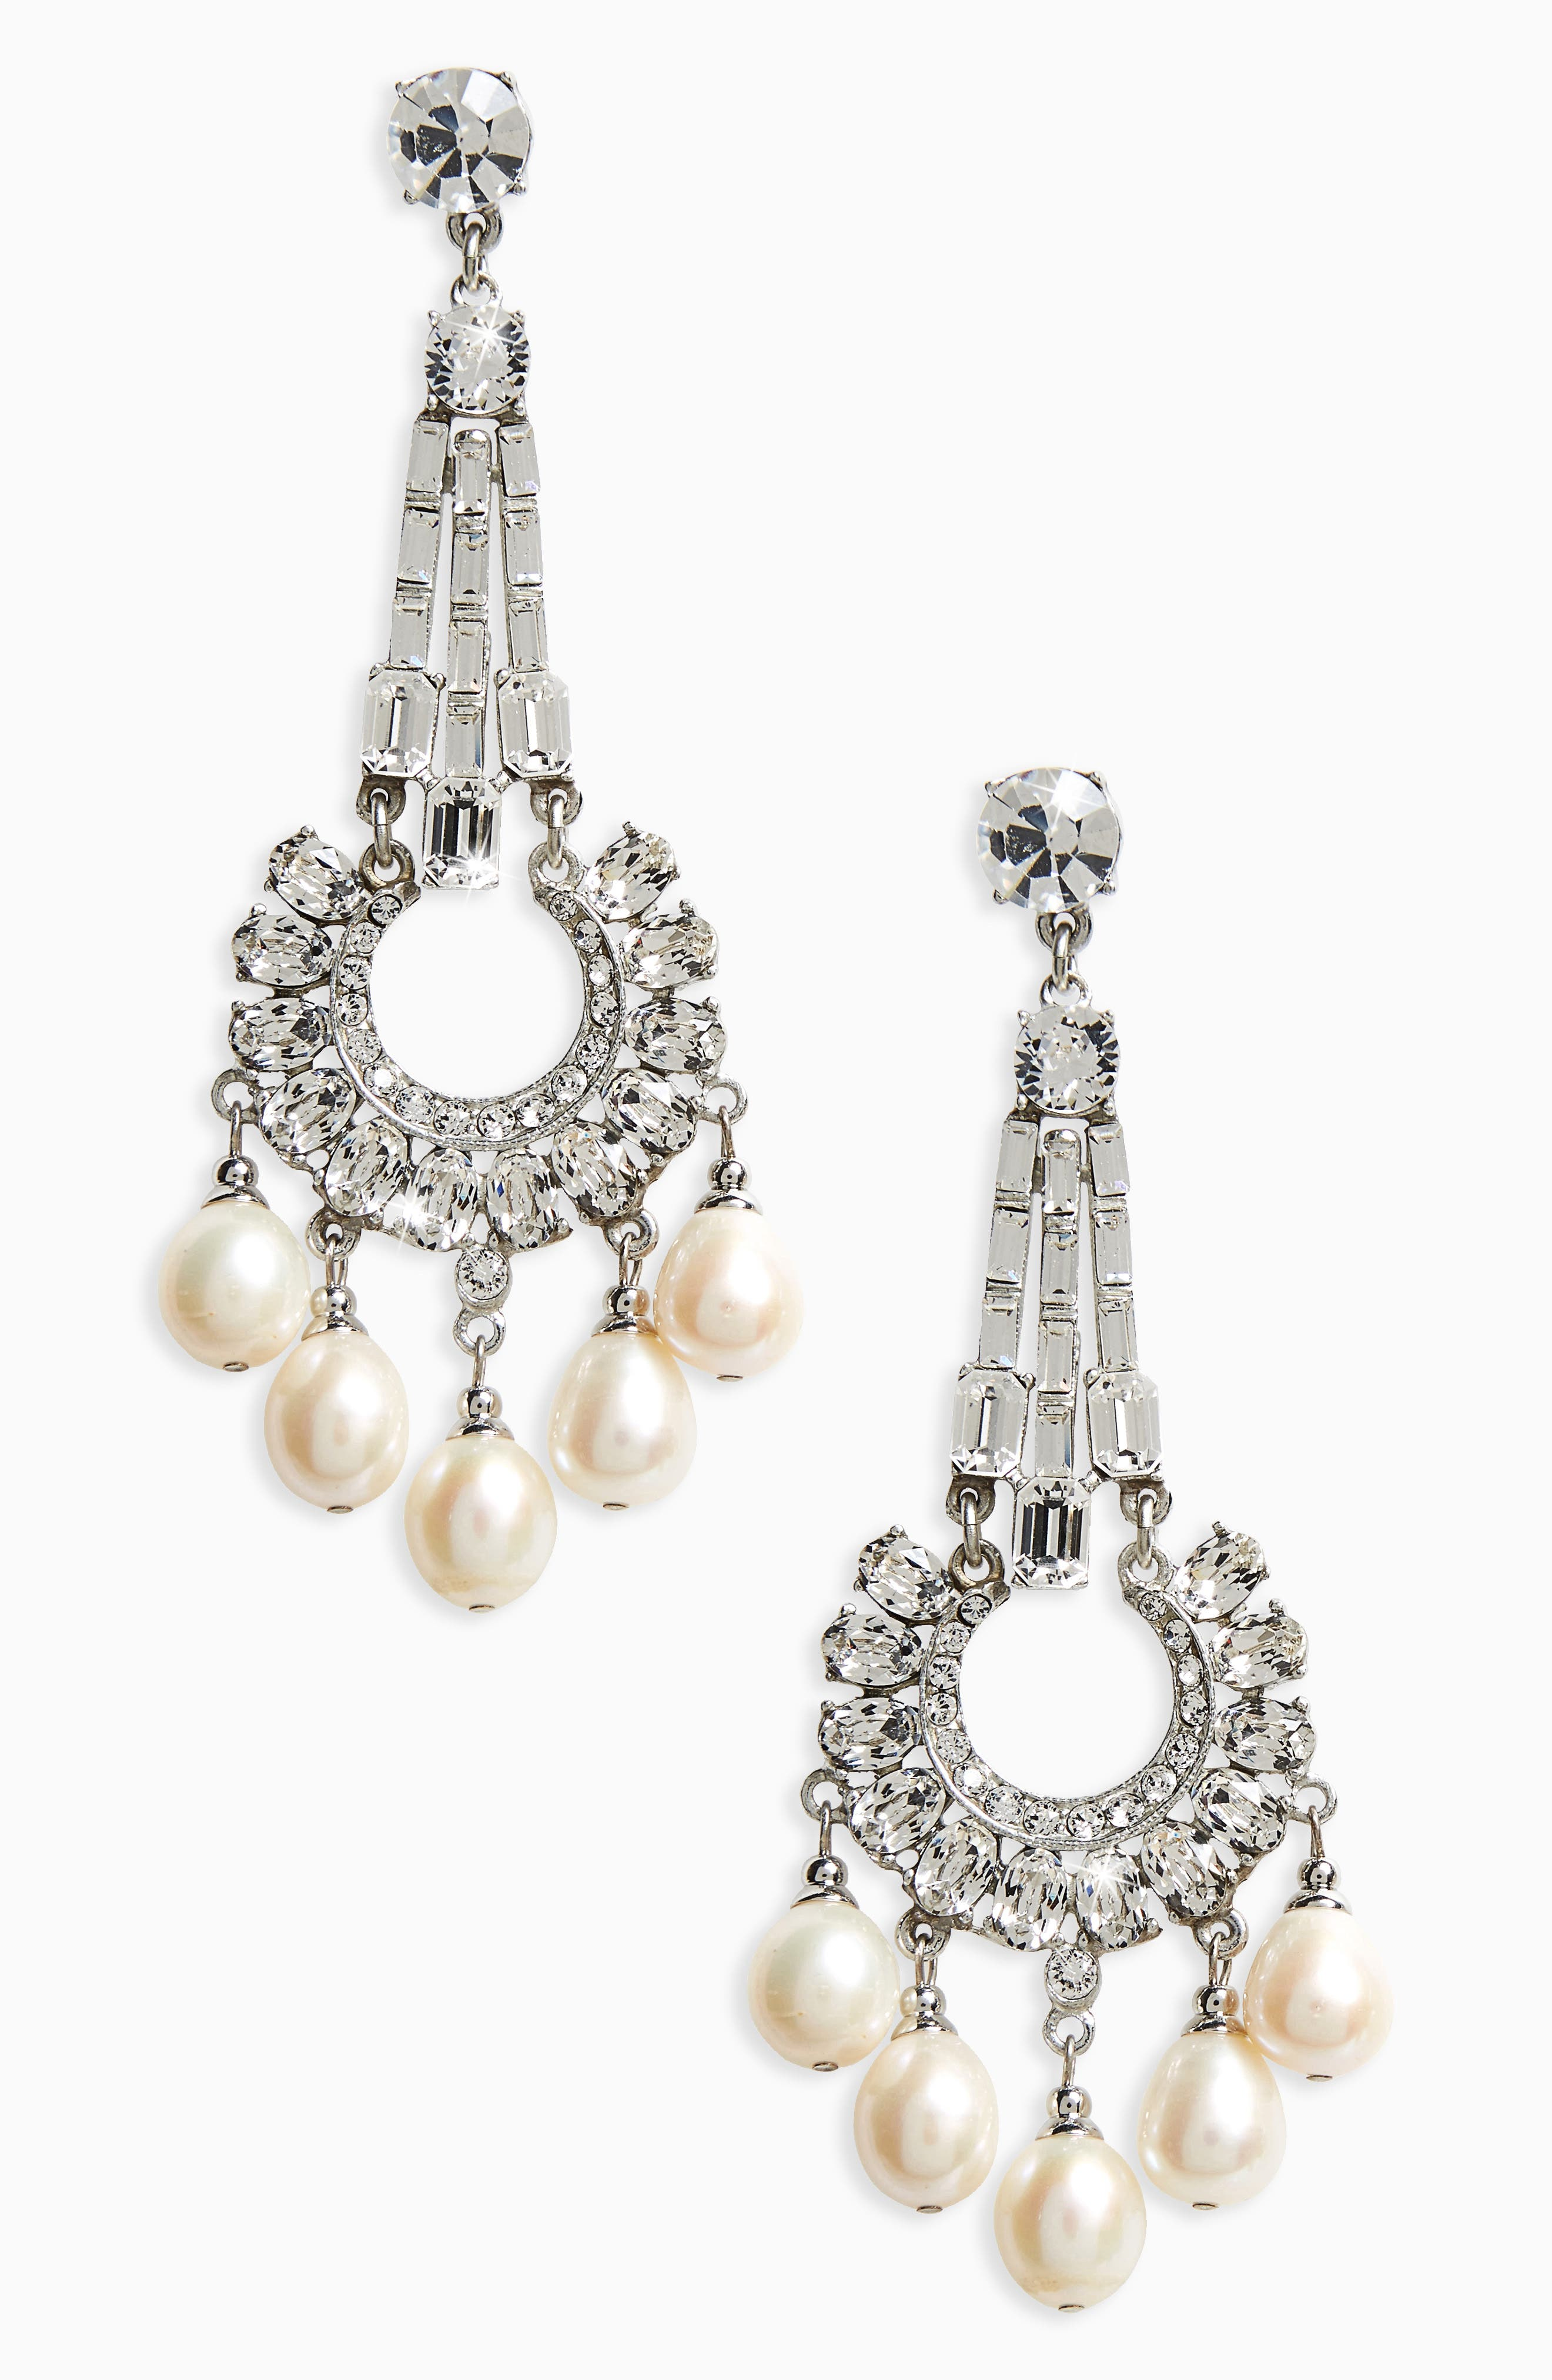 Imitation Pearl & Crystal Drop Earrings,                         Main,                         color, Ivory / Silver